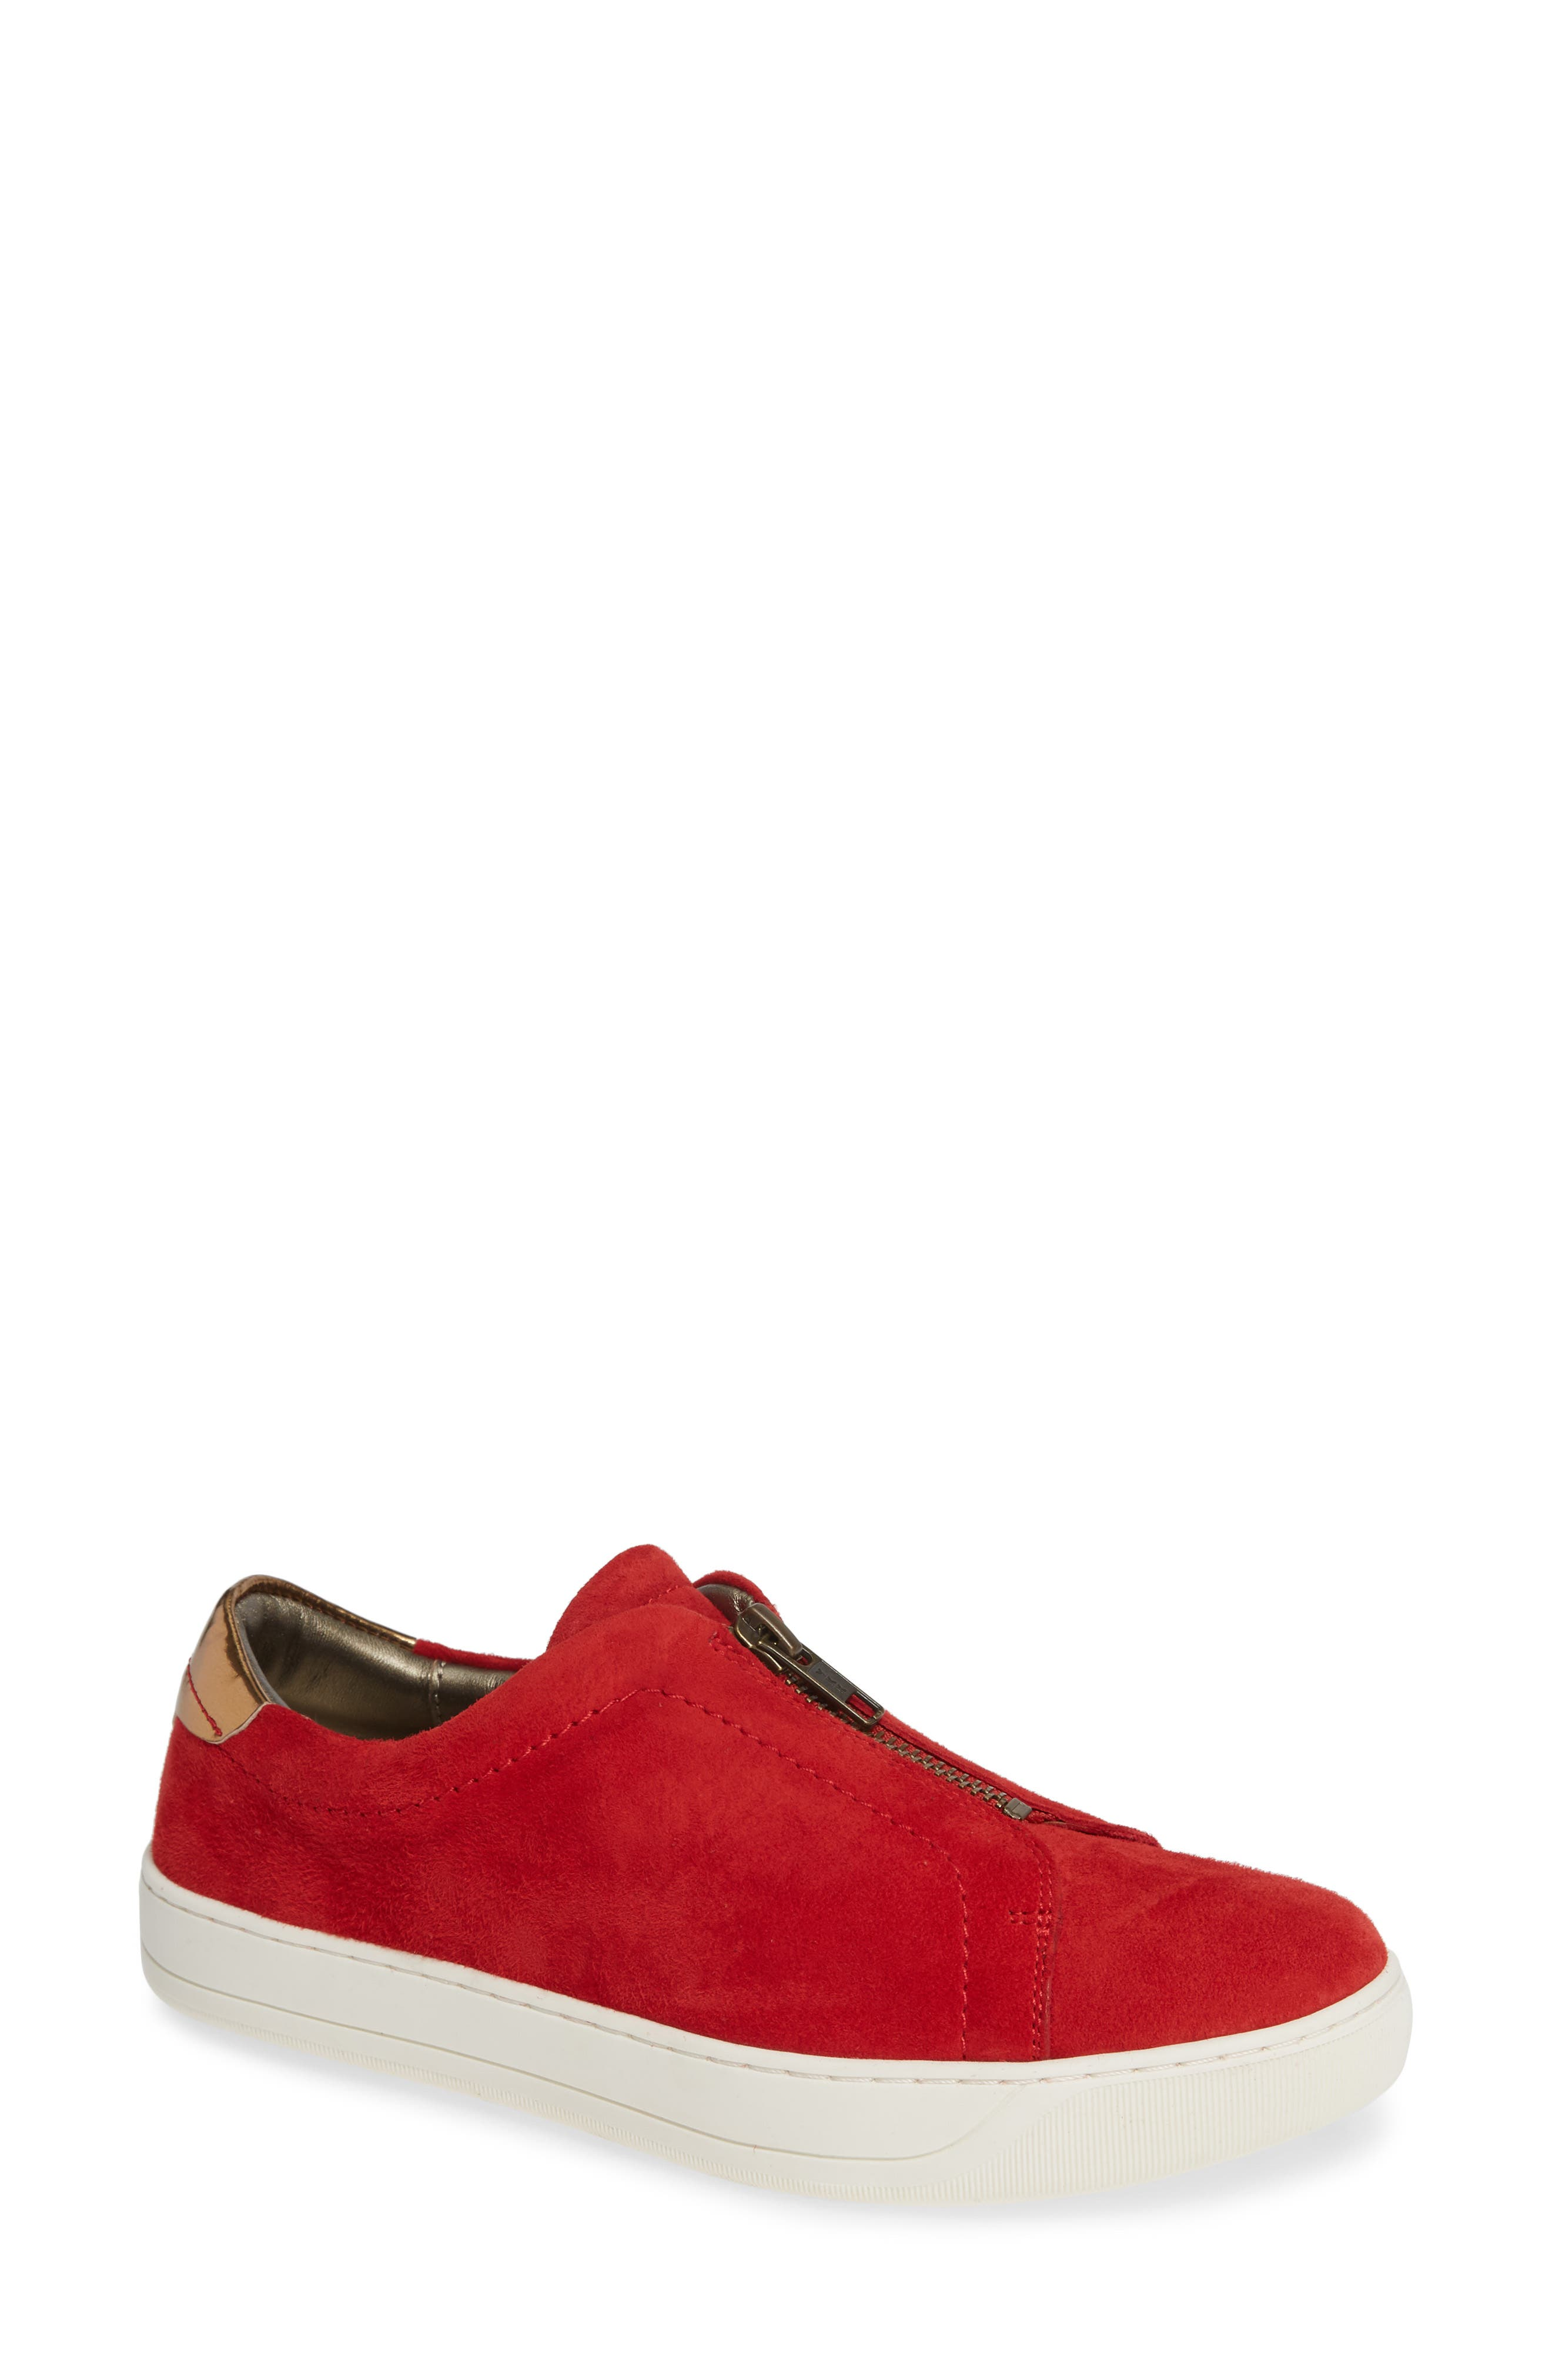 Emma Sneaker,                             Main thumbnail 1, color,                             RED SUEDE